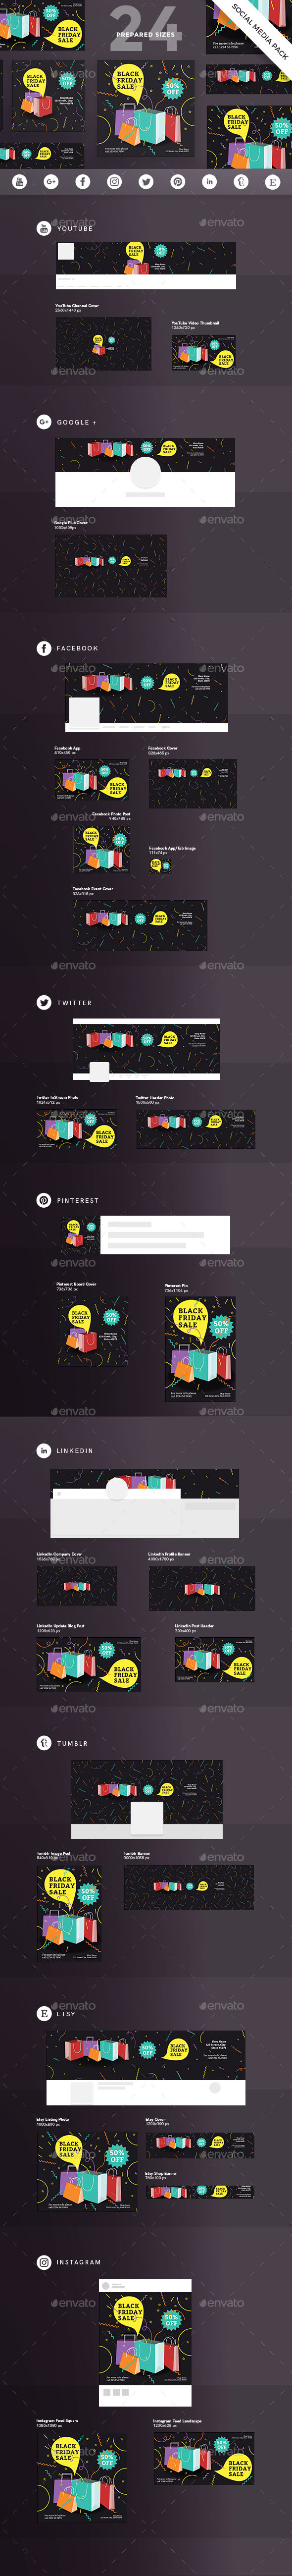 GraphicRiver Black Friday Social Media Pack 20577956